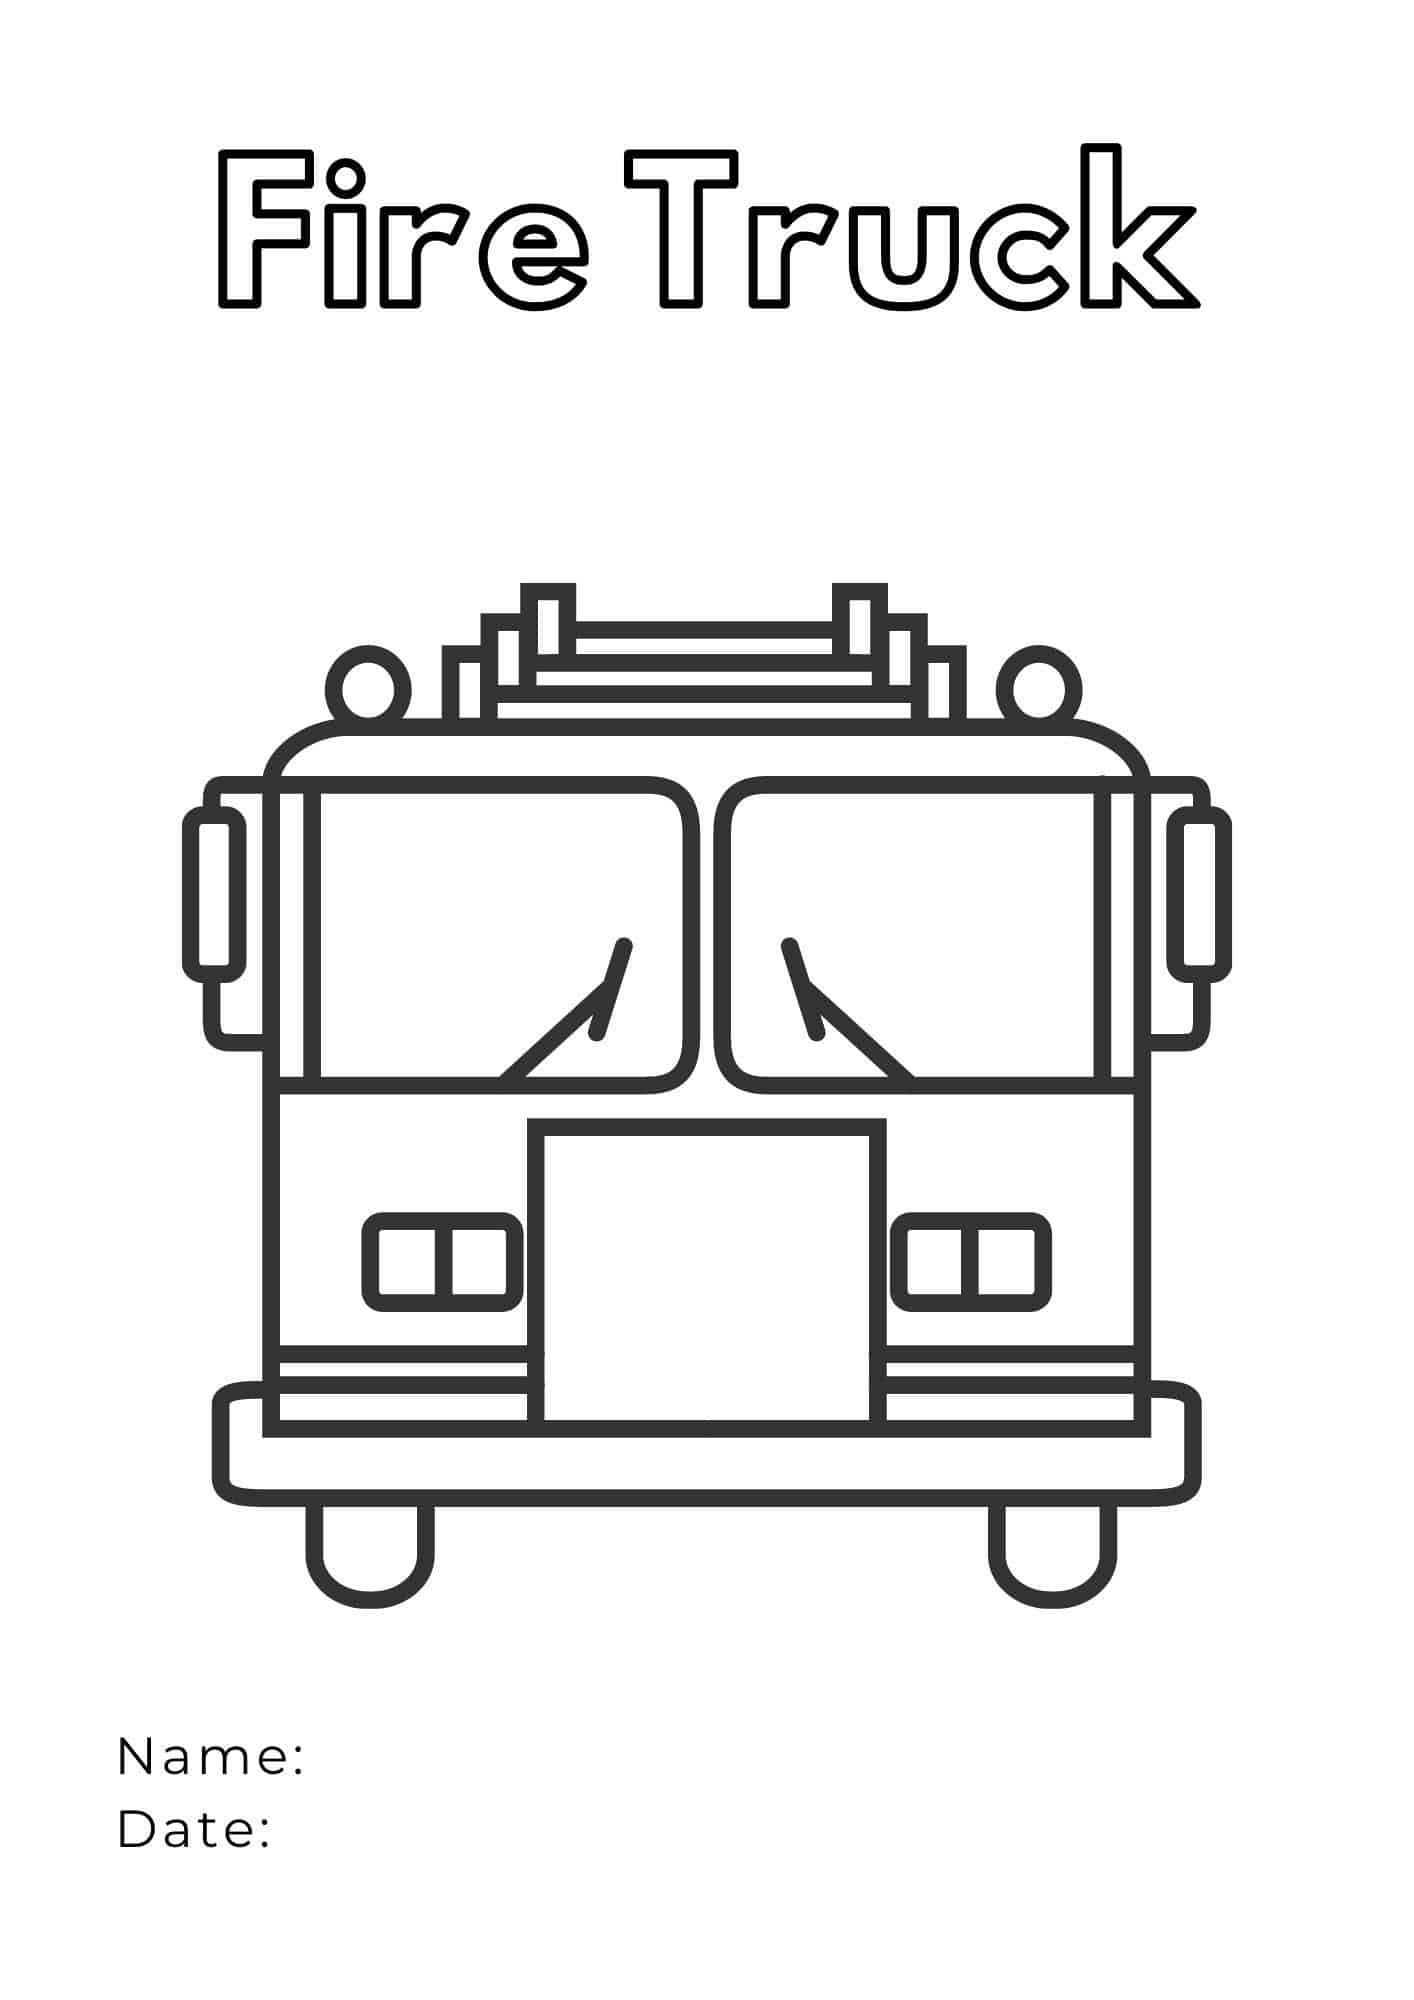 Fire Truck Coloring Page - front of truck